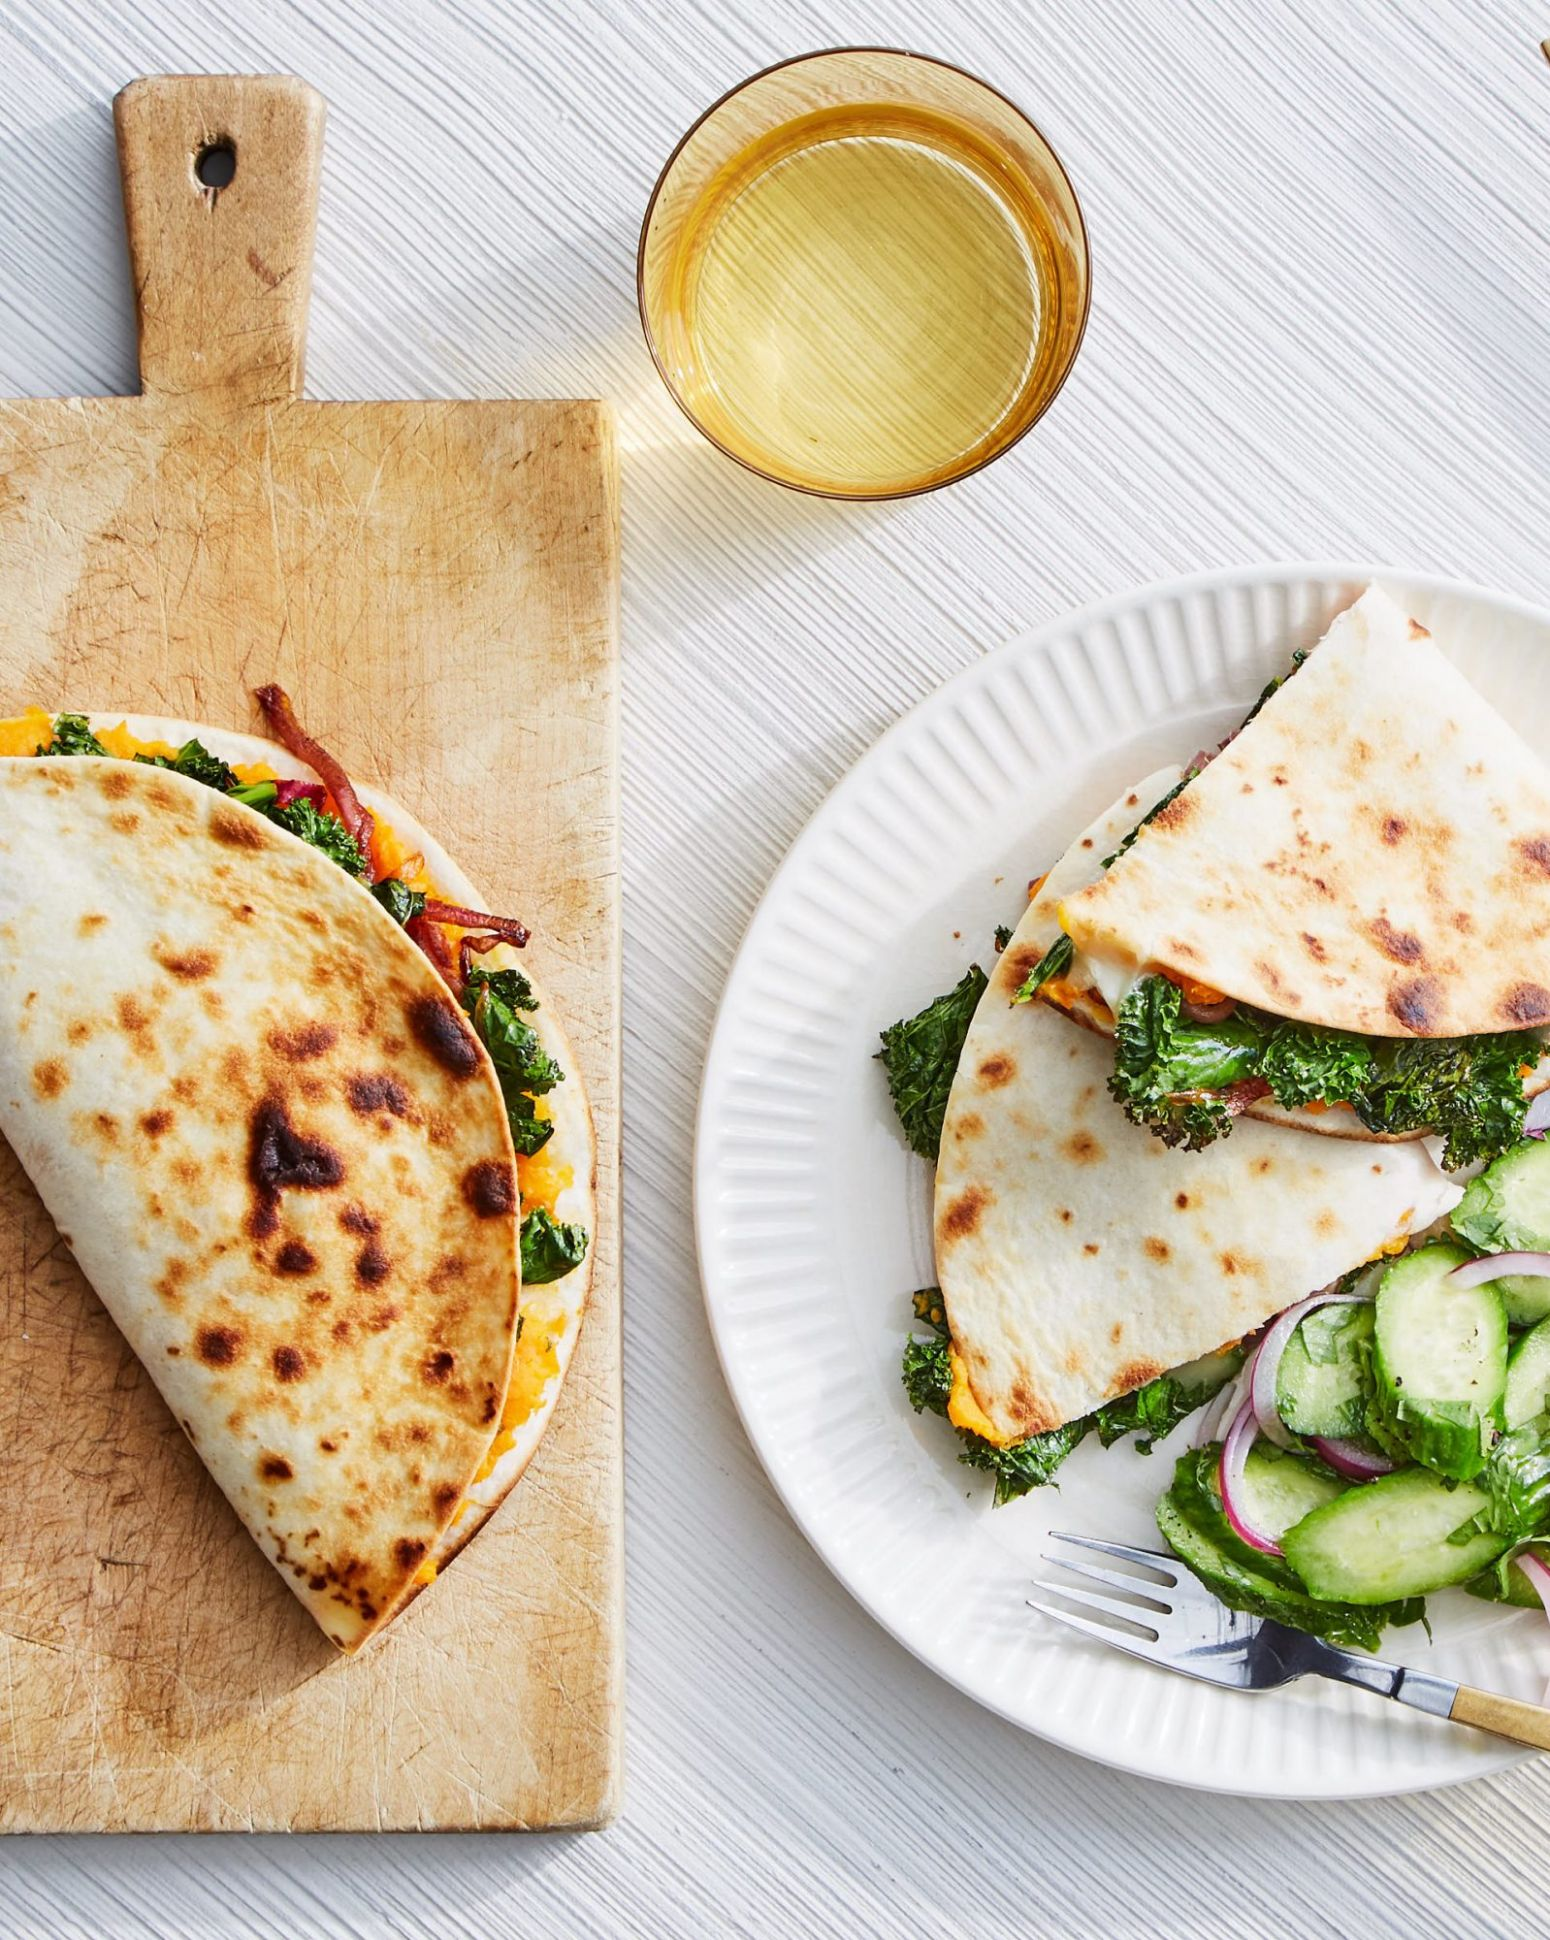 10 Quick Quesadilla Recipes Ideal for Snack or Dinner | Martha Stewart